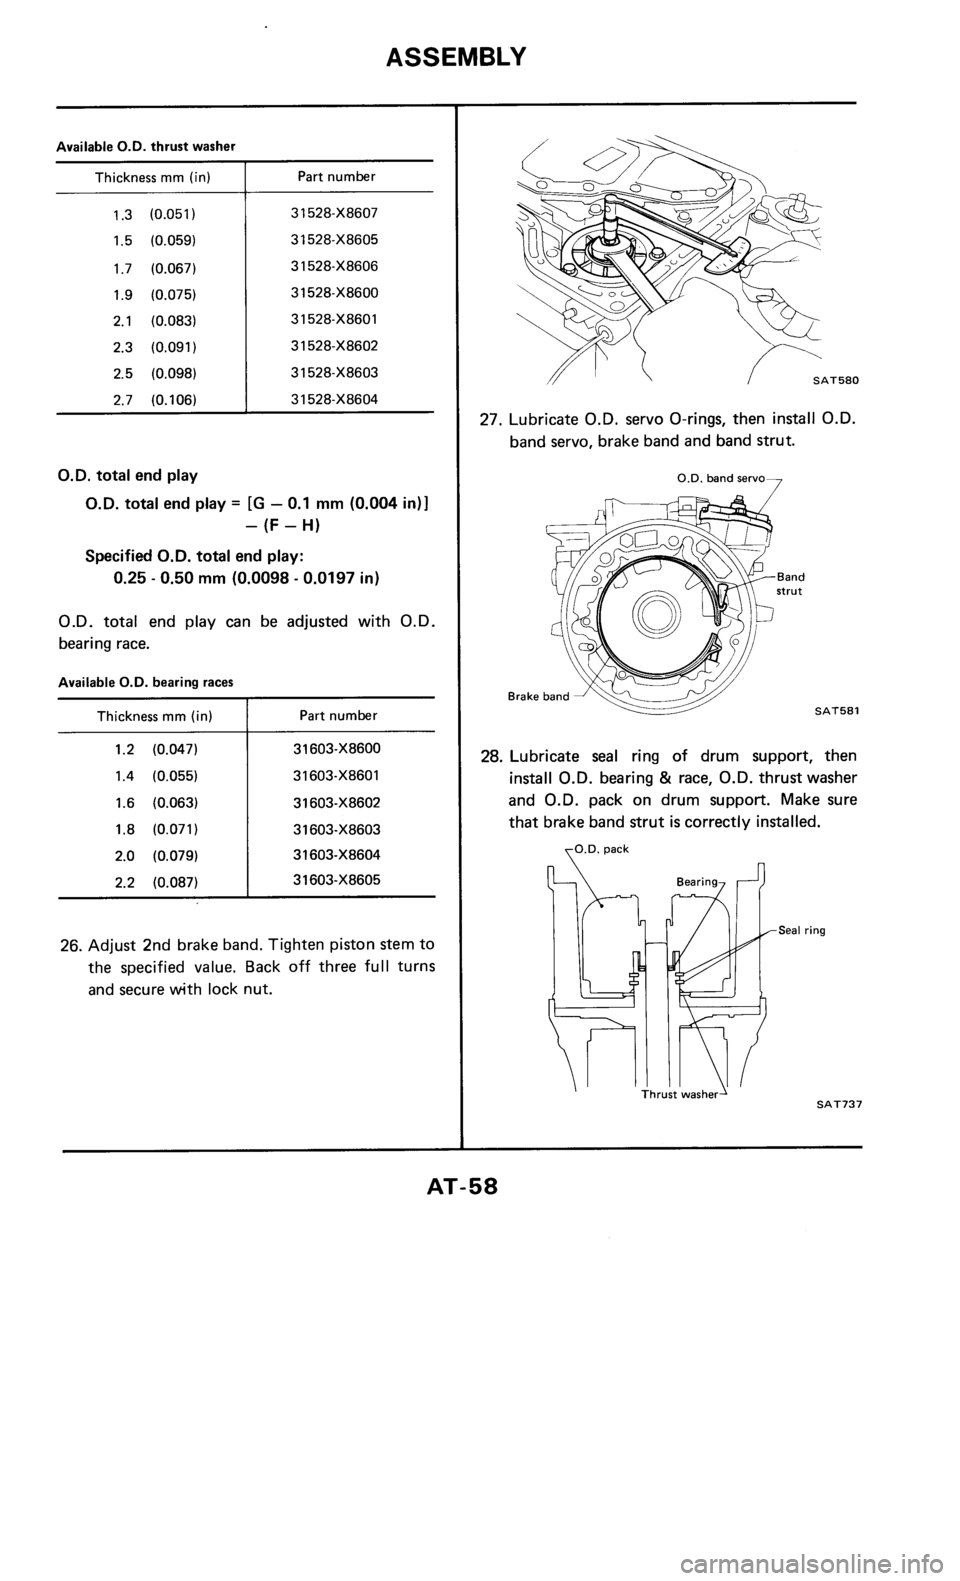 NISSAN 300ZX 1986 Z31 Automatic Transmission Repair Manual